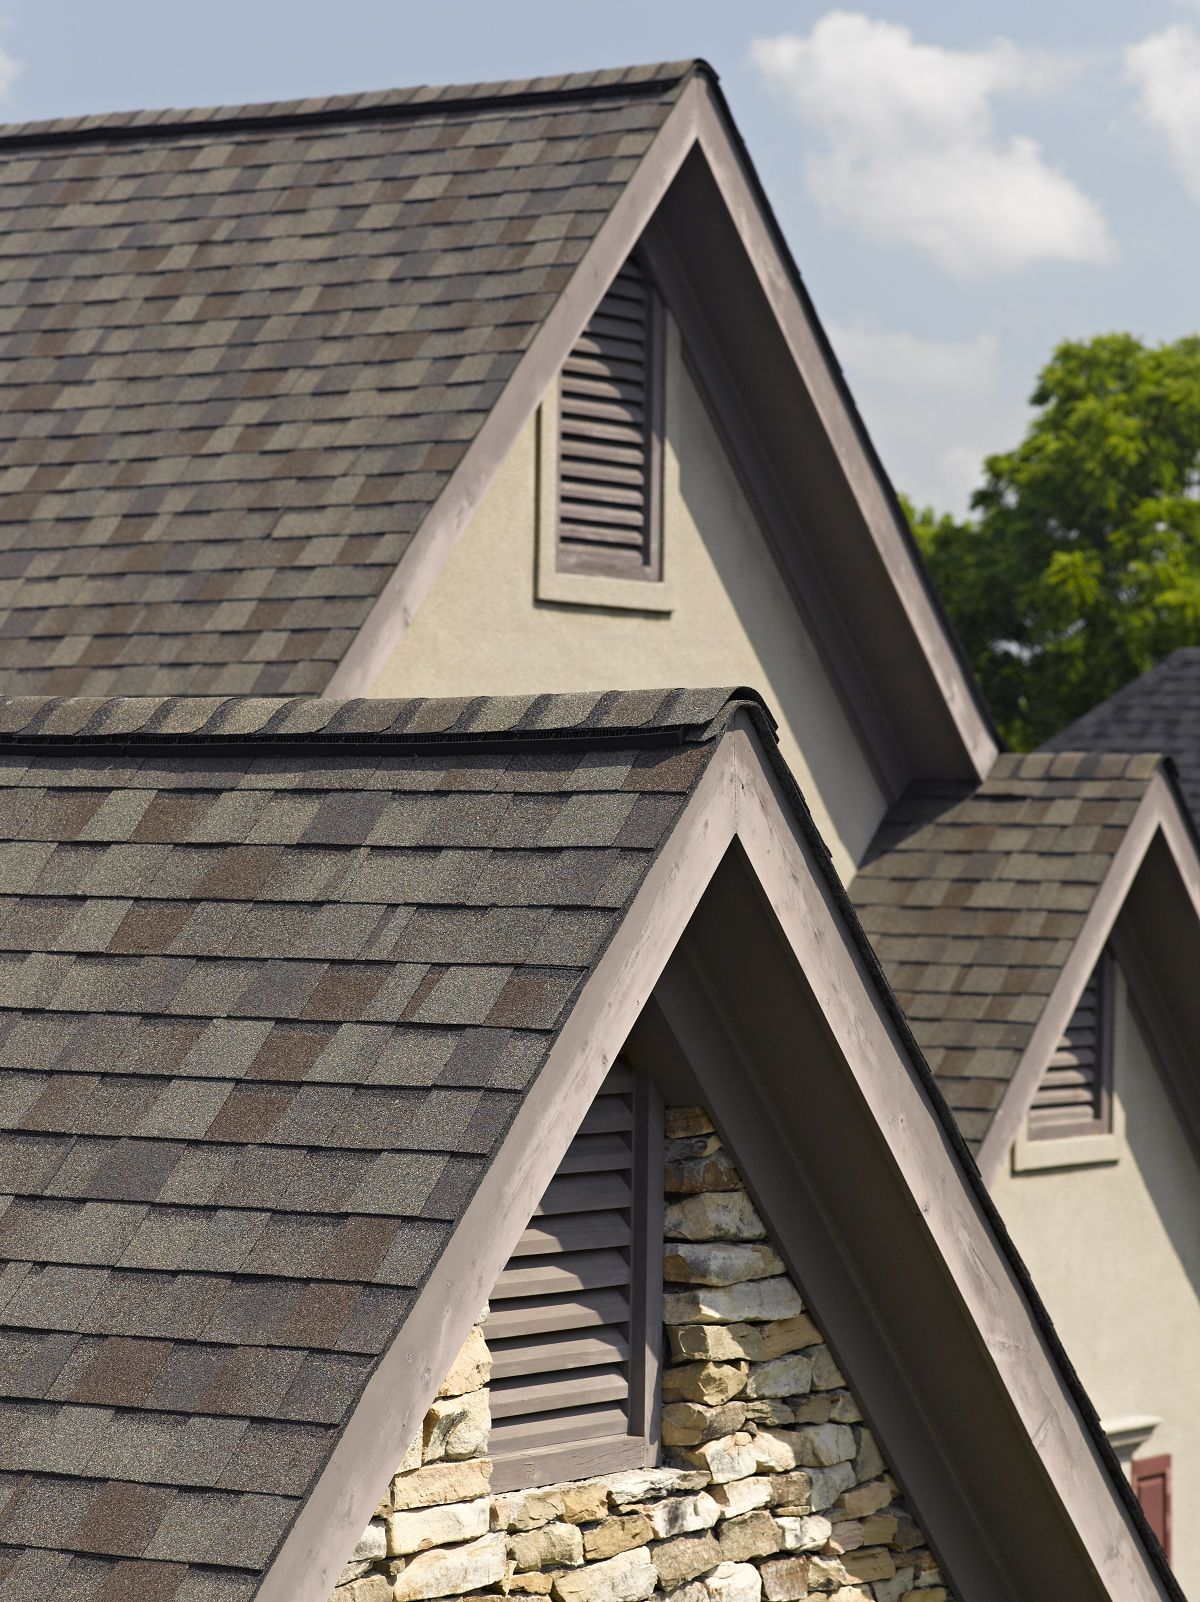 Certainteed Landmark Shingle In Weathered Wood Roof Shingle Colors Shingle Exterior Roof Shingles